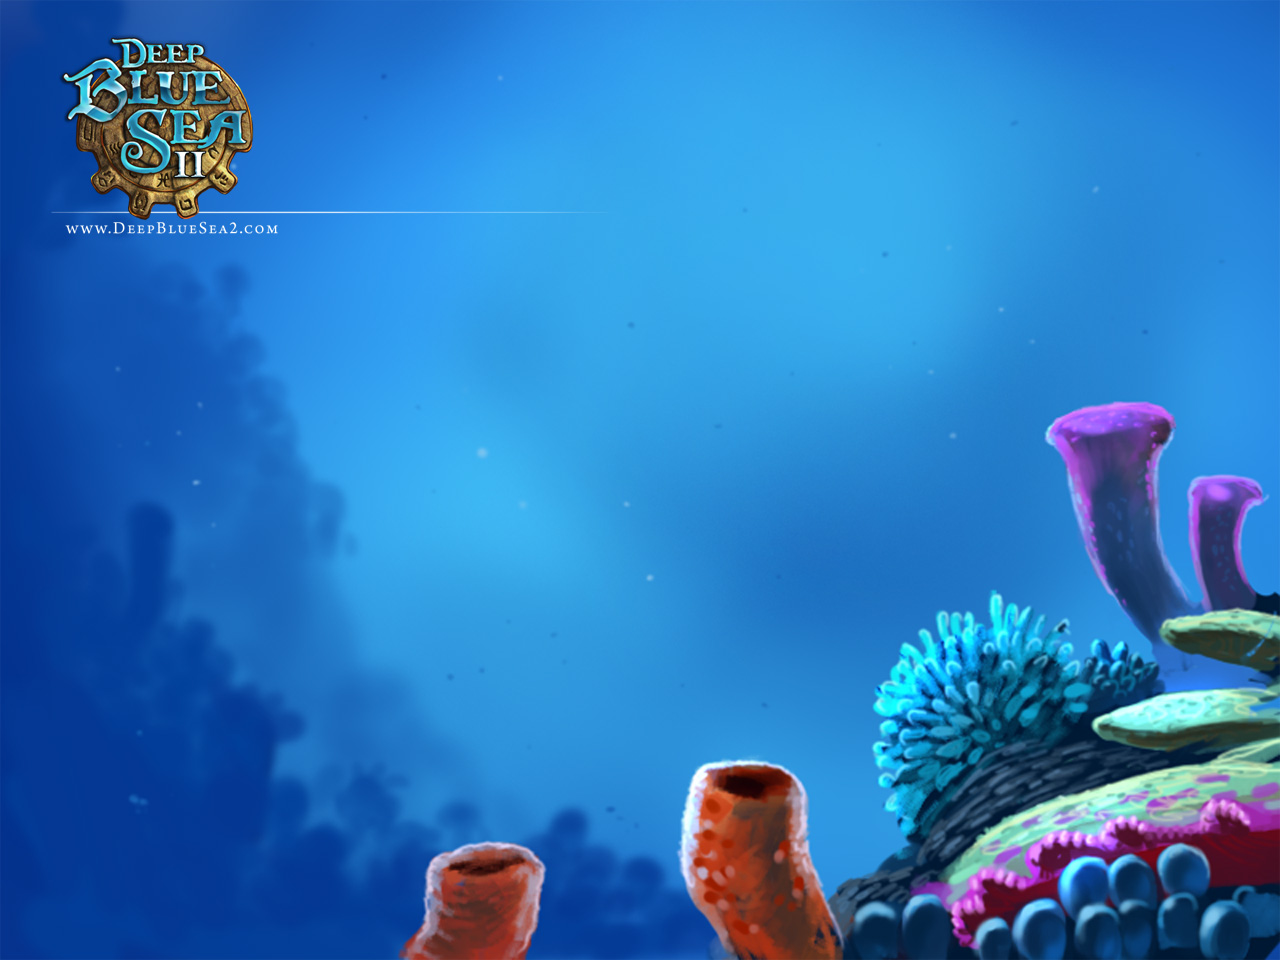 Deep Sea Desktop Wallpaper - WallpaperSafari